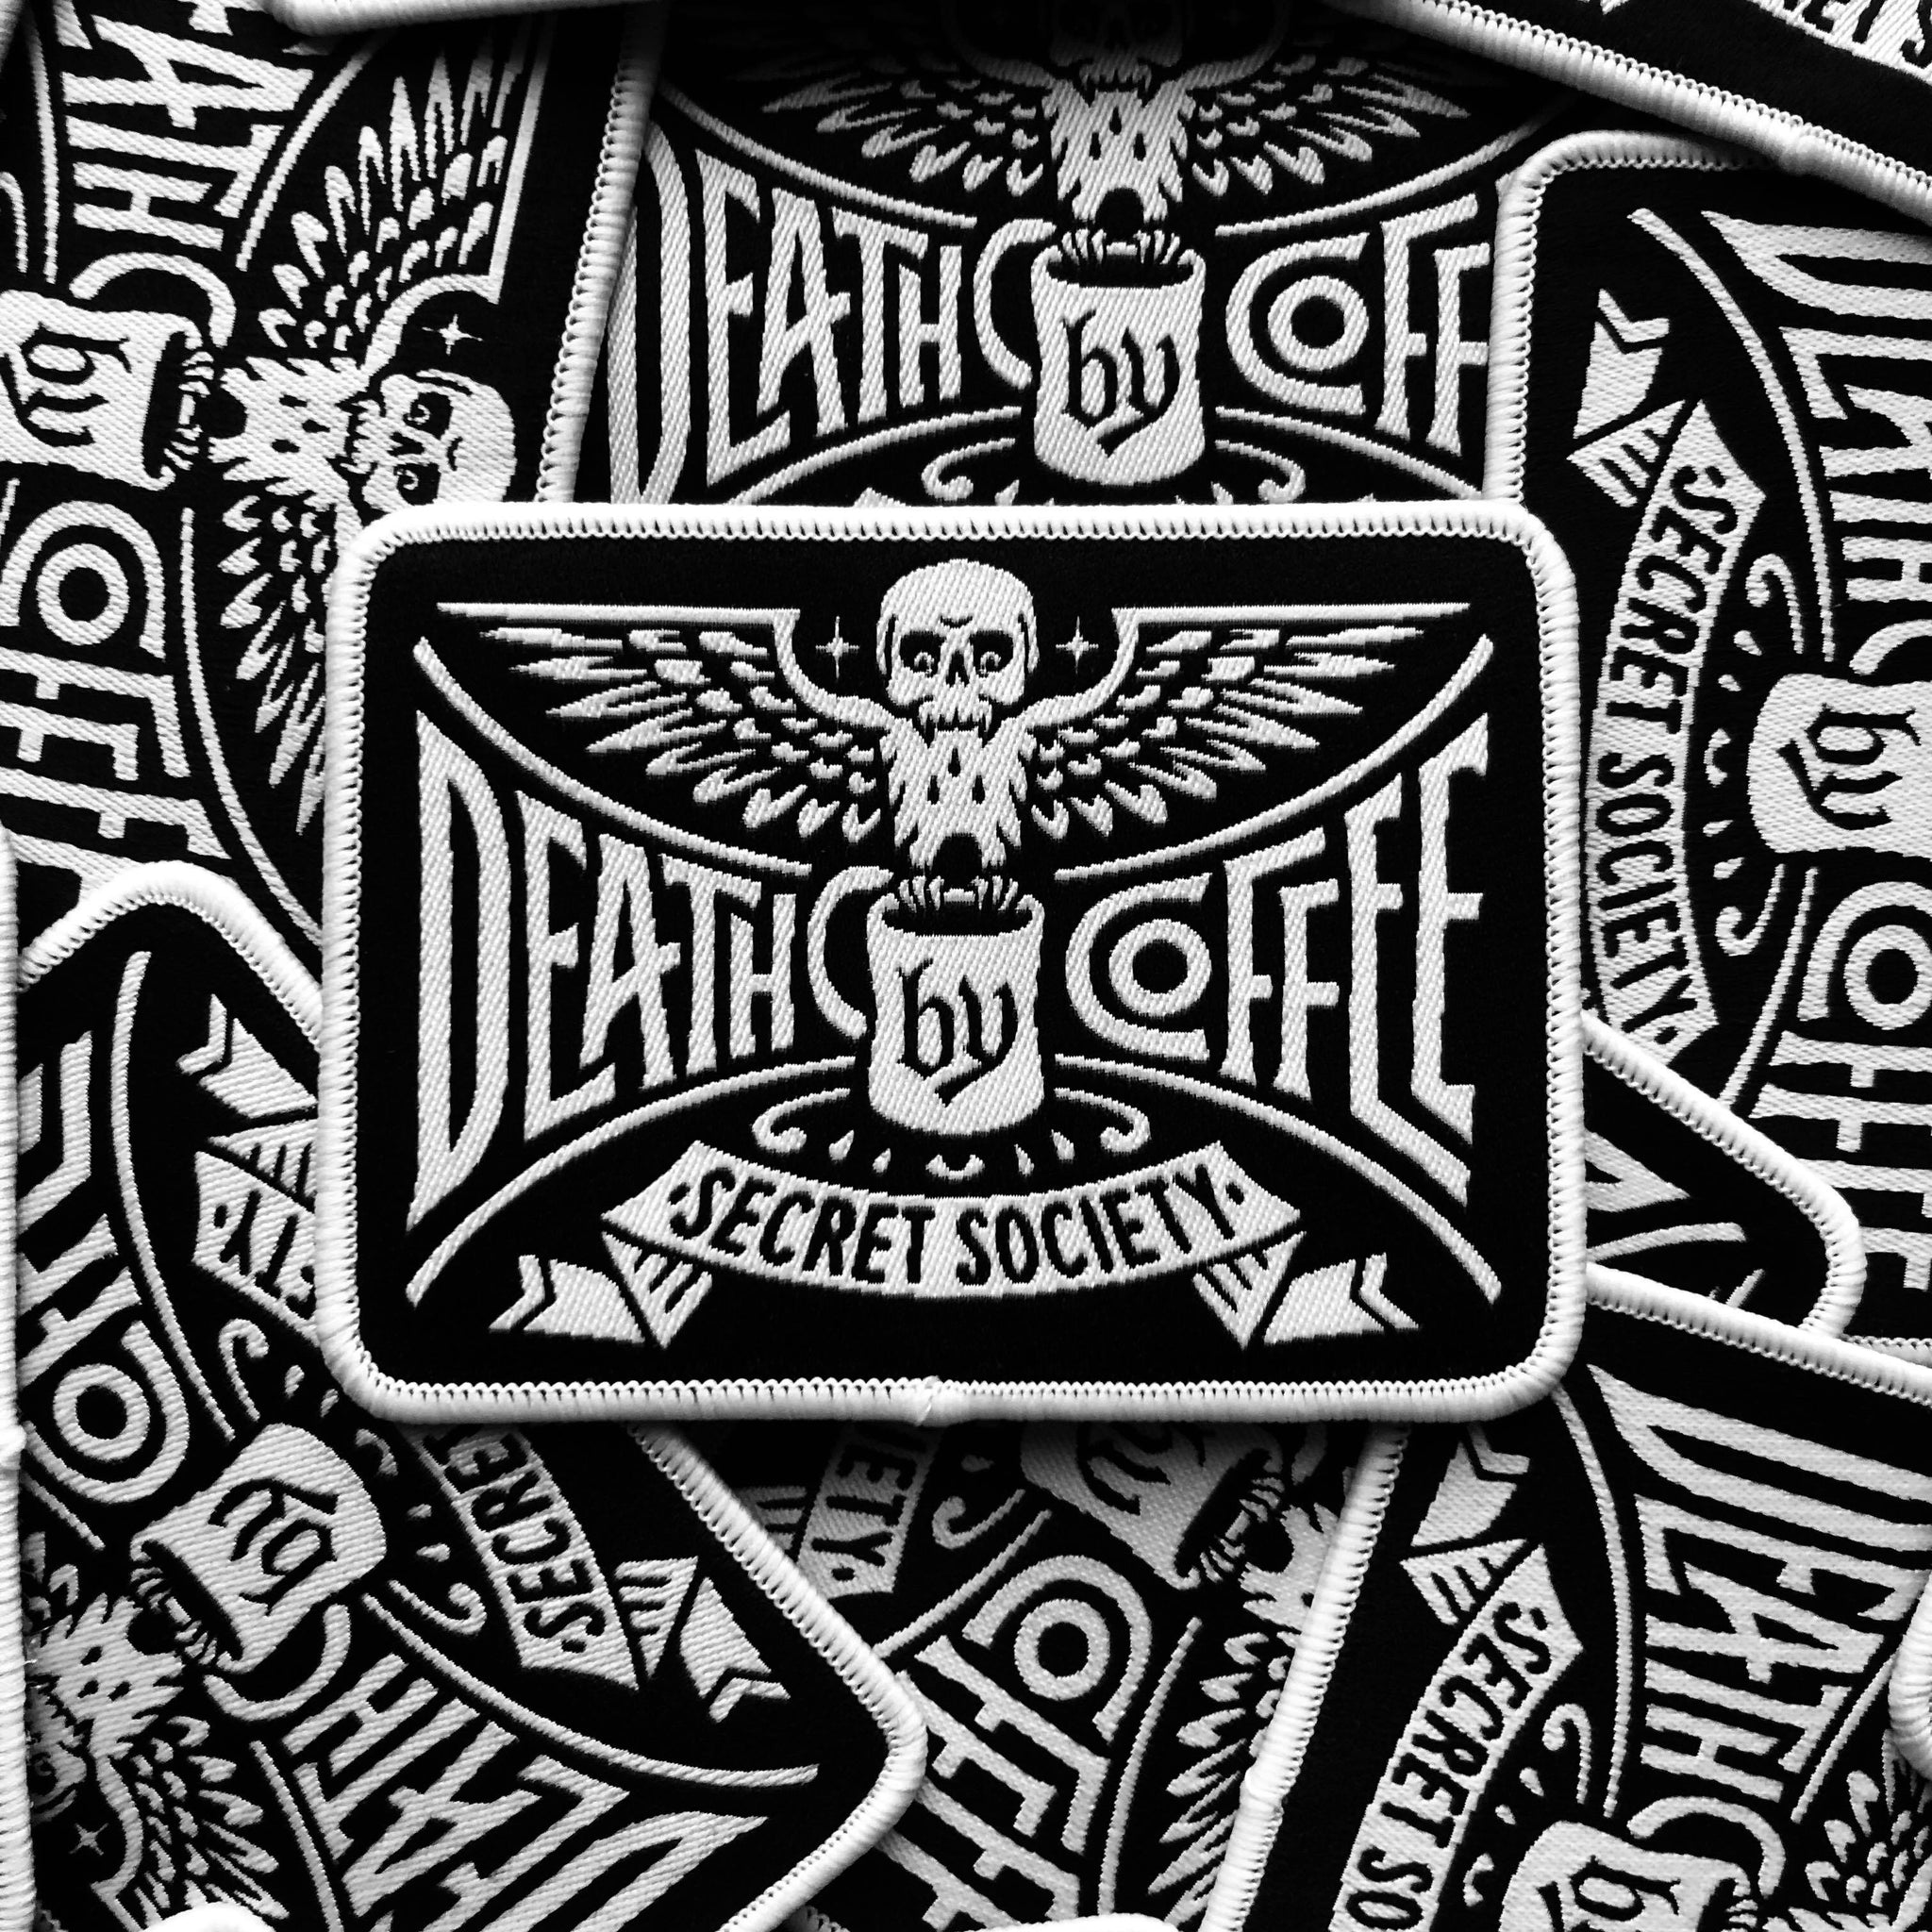 Death By Coffee - Secret Society Patch